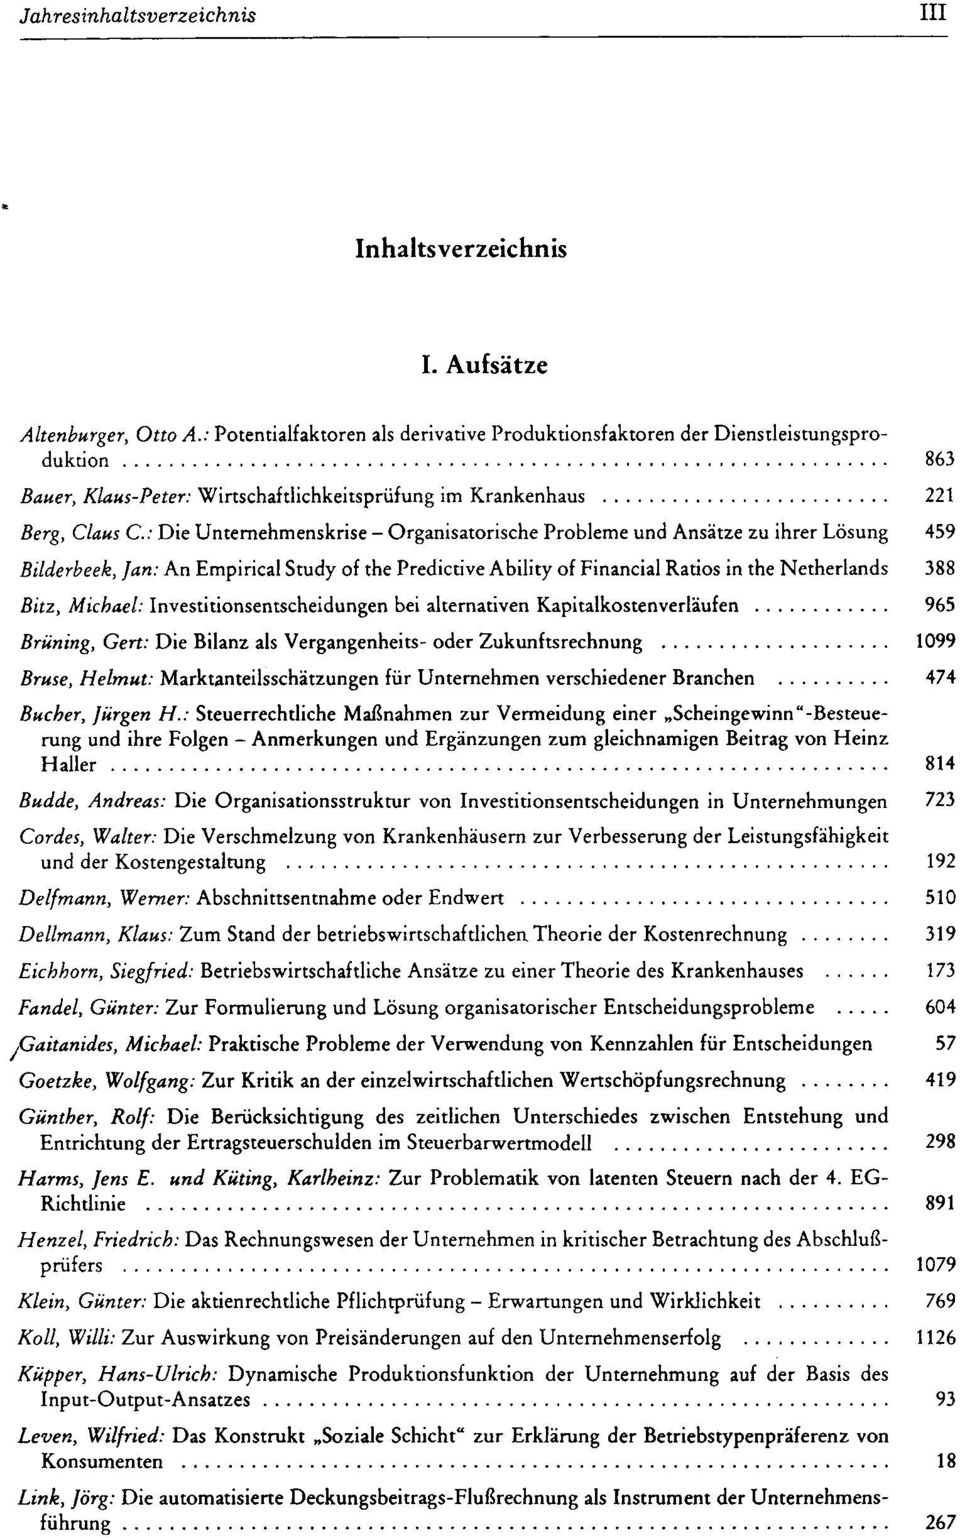 Organisatorische Probleme und Ansätze zu ihrer Lösung 459 Bilderbeek, Jan: An Empirical Study of the Predictive Ability of Financial Ratios in the Netherlands 388 Bitz, Michael: